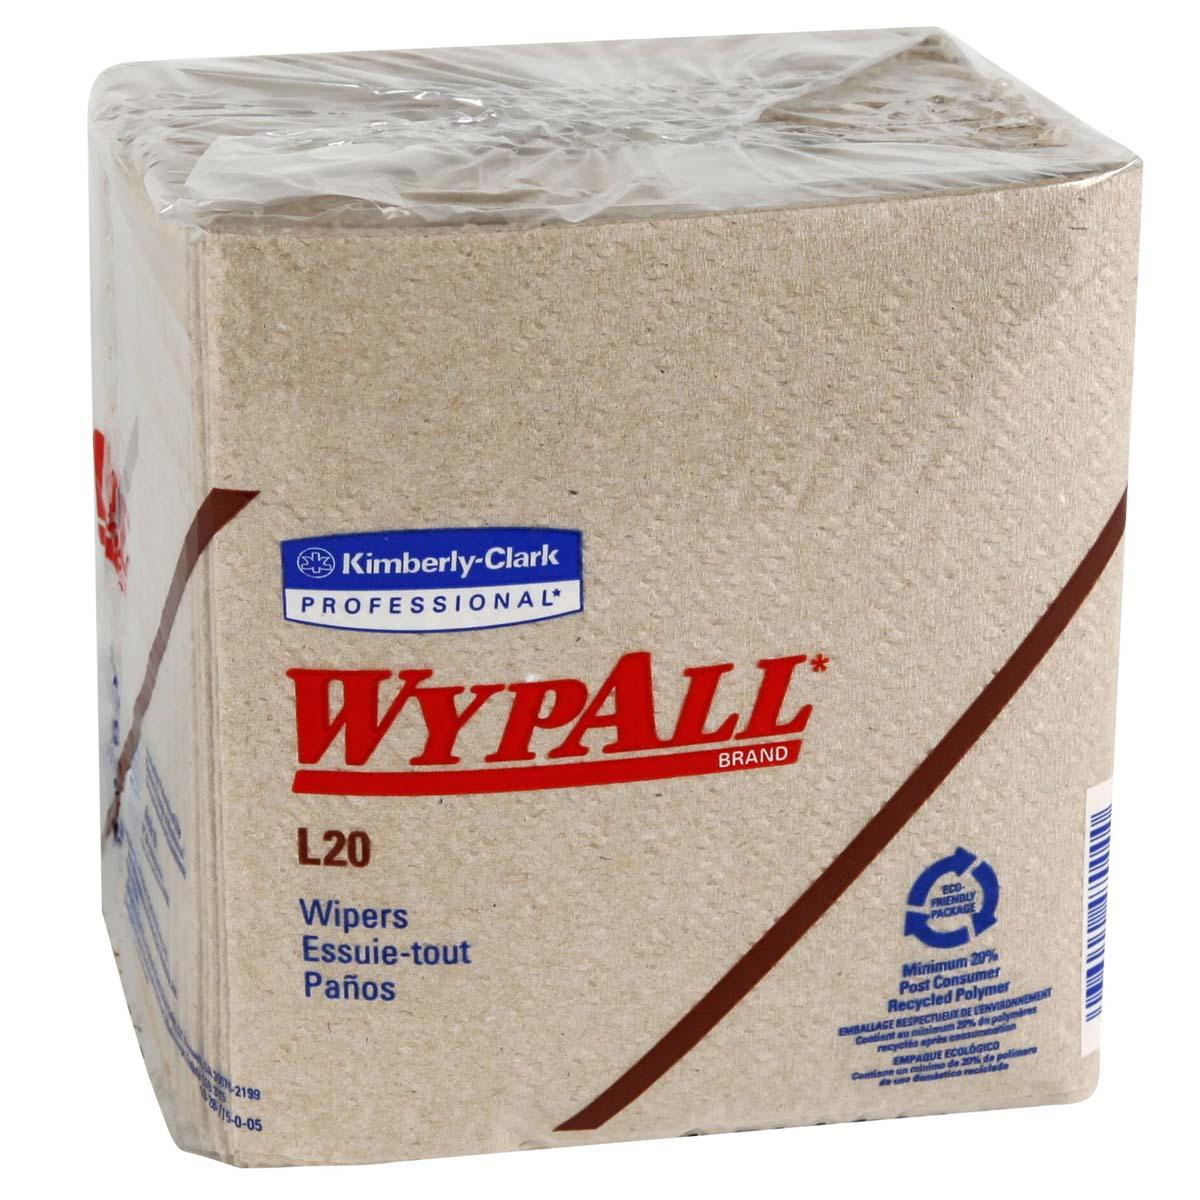 WypAll L20 Limited Use Wipers (47000), Quarterfold Format, Tan / Natural, 2-Ply, 12 Packs / Case, 68 Sheets / Pack